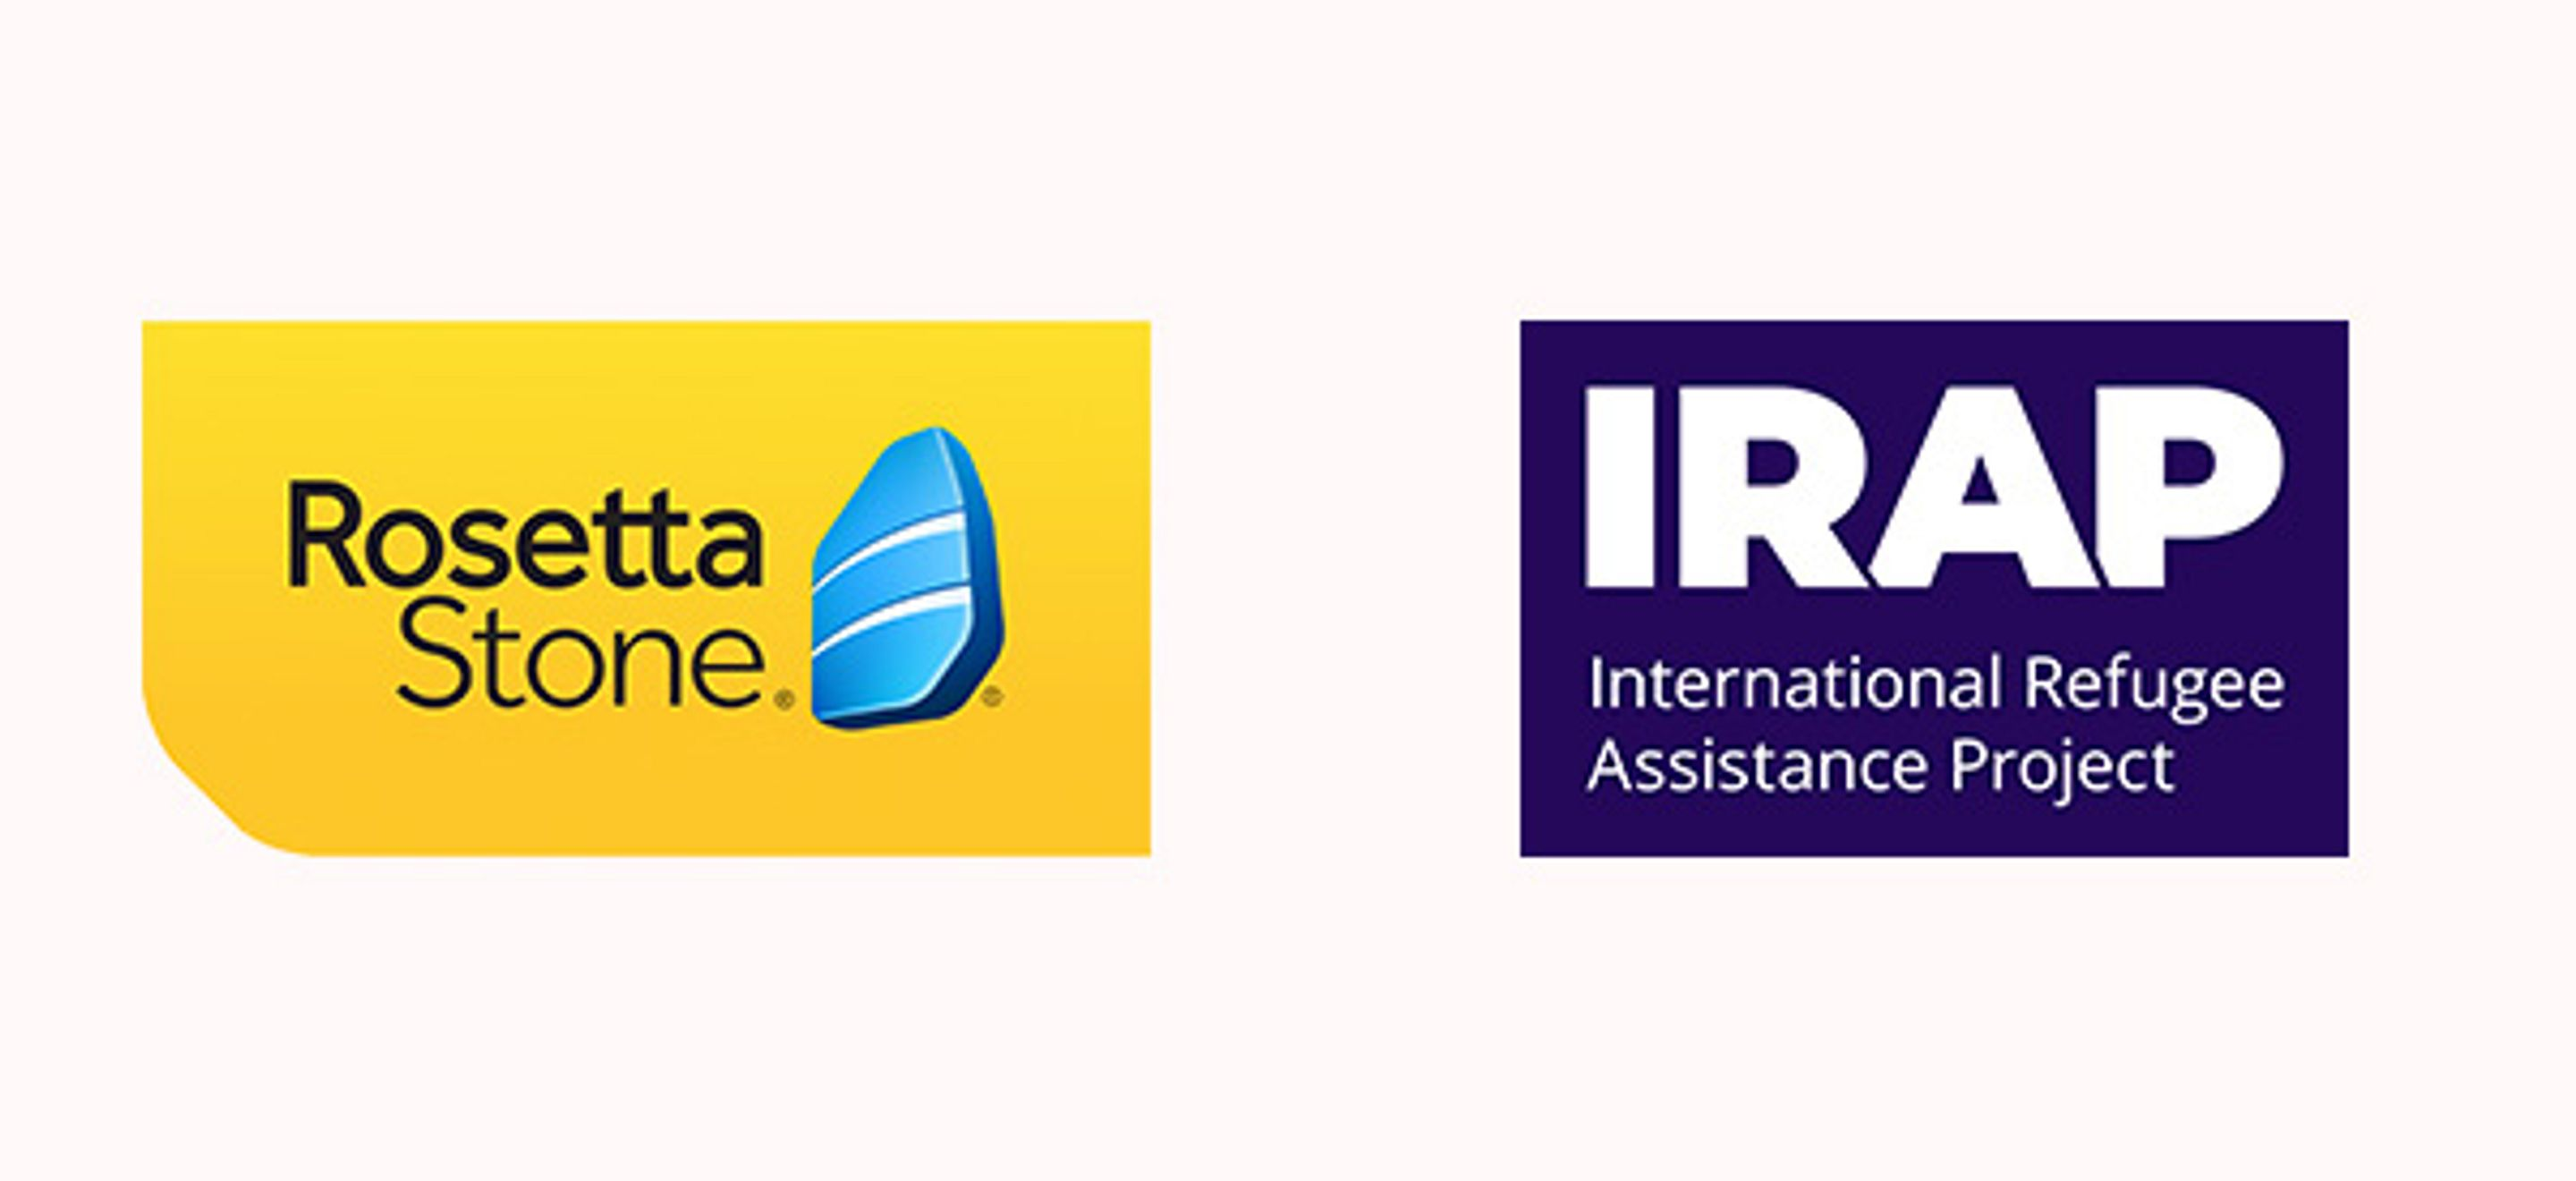 Side-by-side logos for Rosetta Stone and IRAP. Rosetta Stone's logo is a yellow rectangle with a rounded lower left corner with the black text Rosetta Stone and an illustration of a blue stone. IRAP's logo is a bright purple rectangle with the text IRAP in bold and underneath it International Refugee Assistance Project.